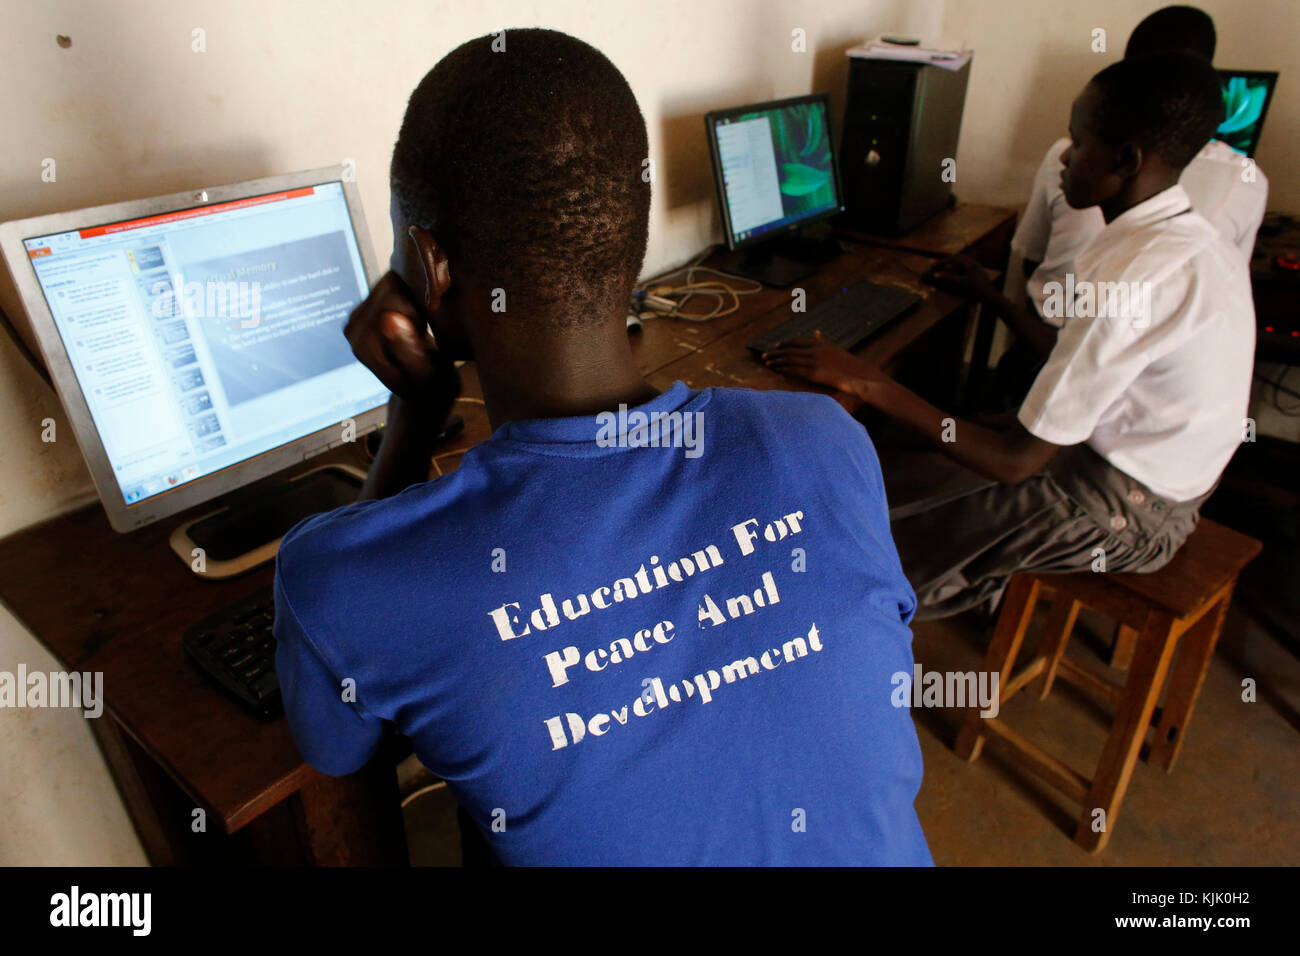 Anaka senior secondary school. The computers have been purchased with a 3 million UGS loan from from UMF microfinance. - Stock Image